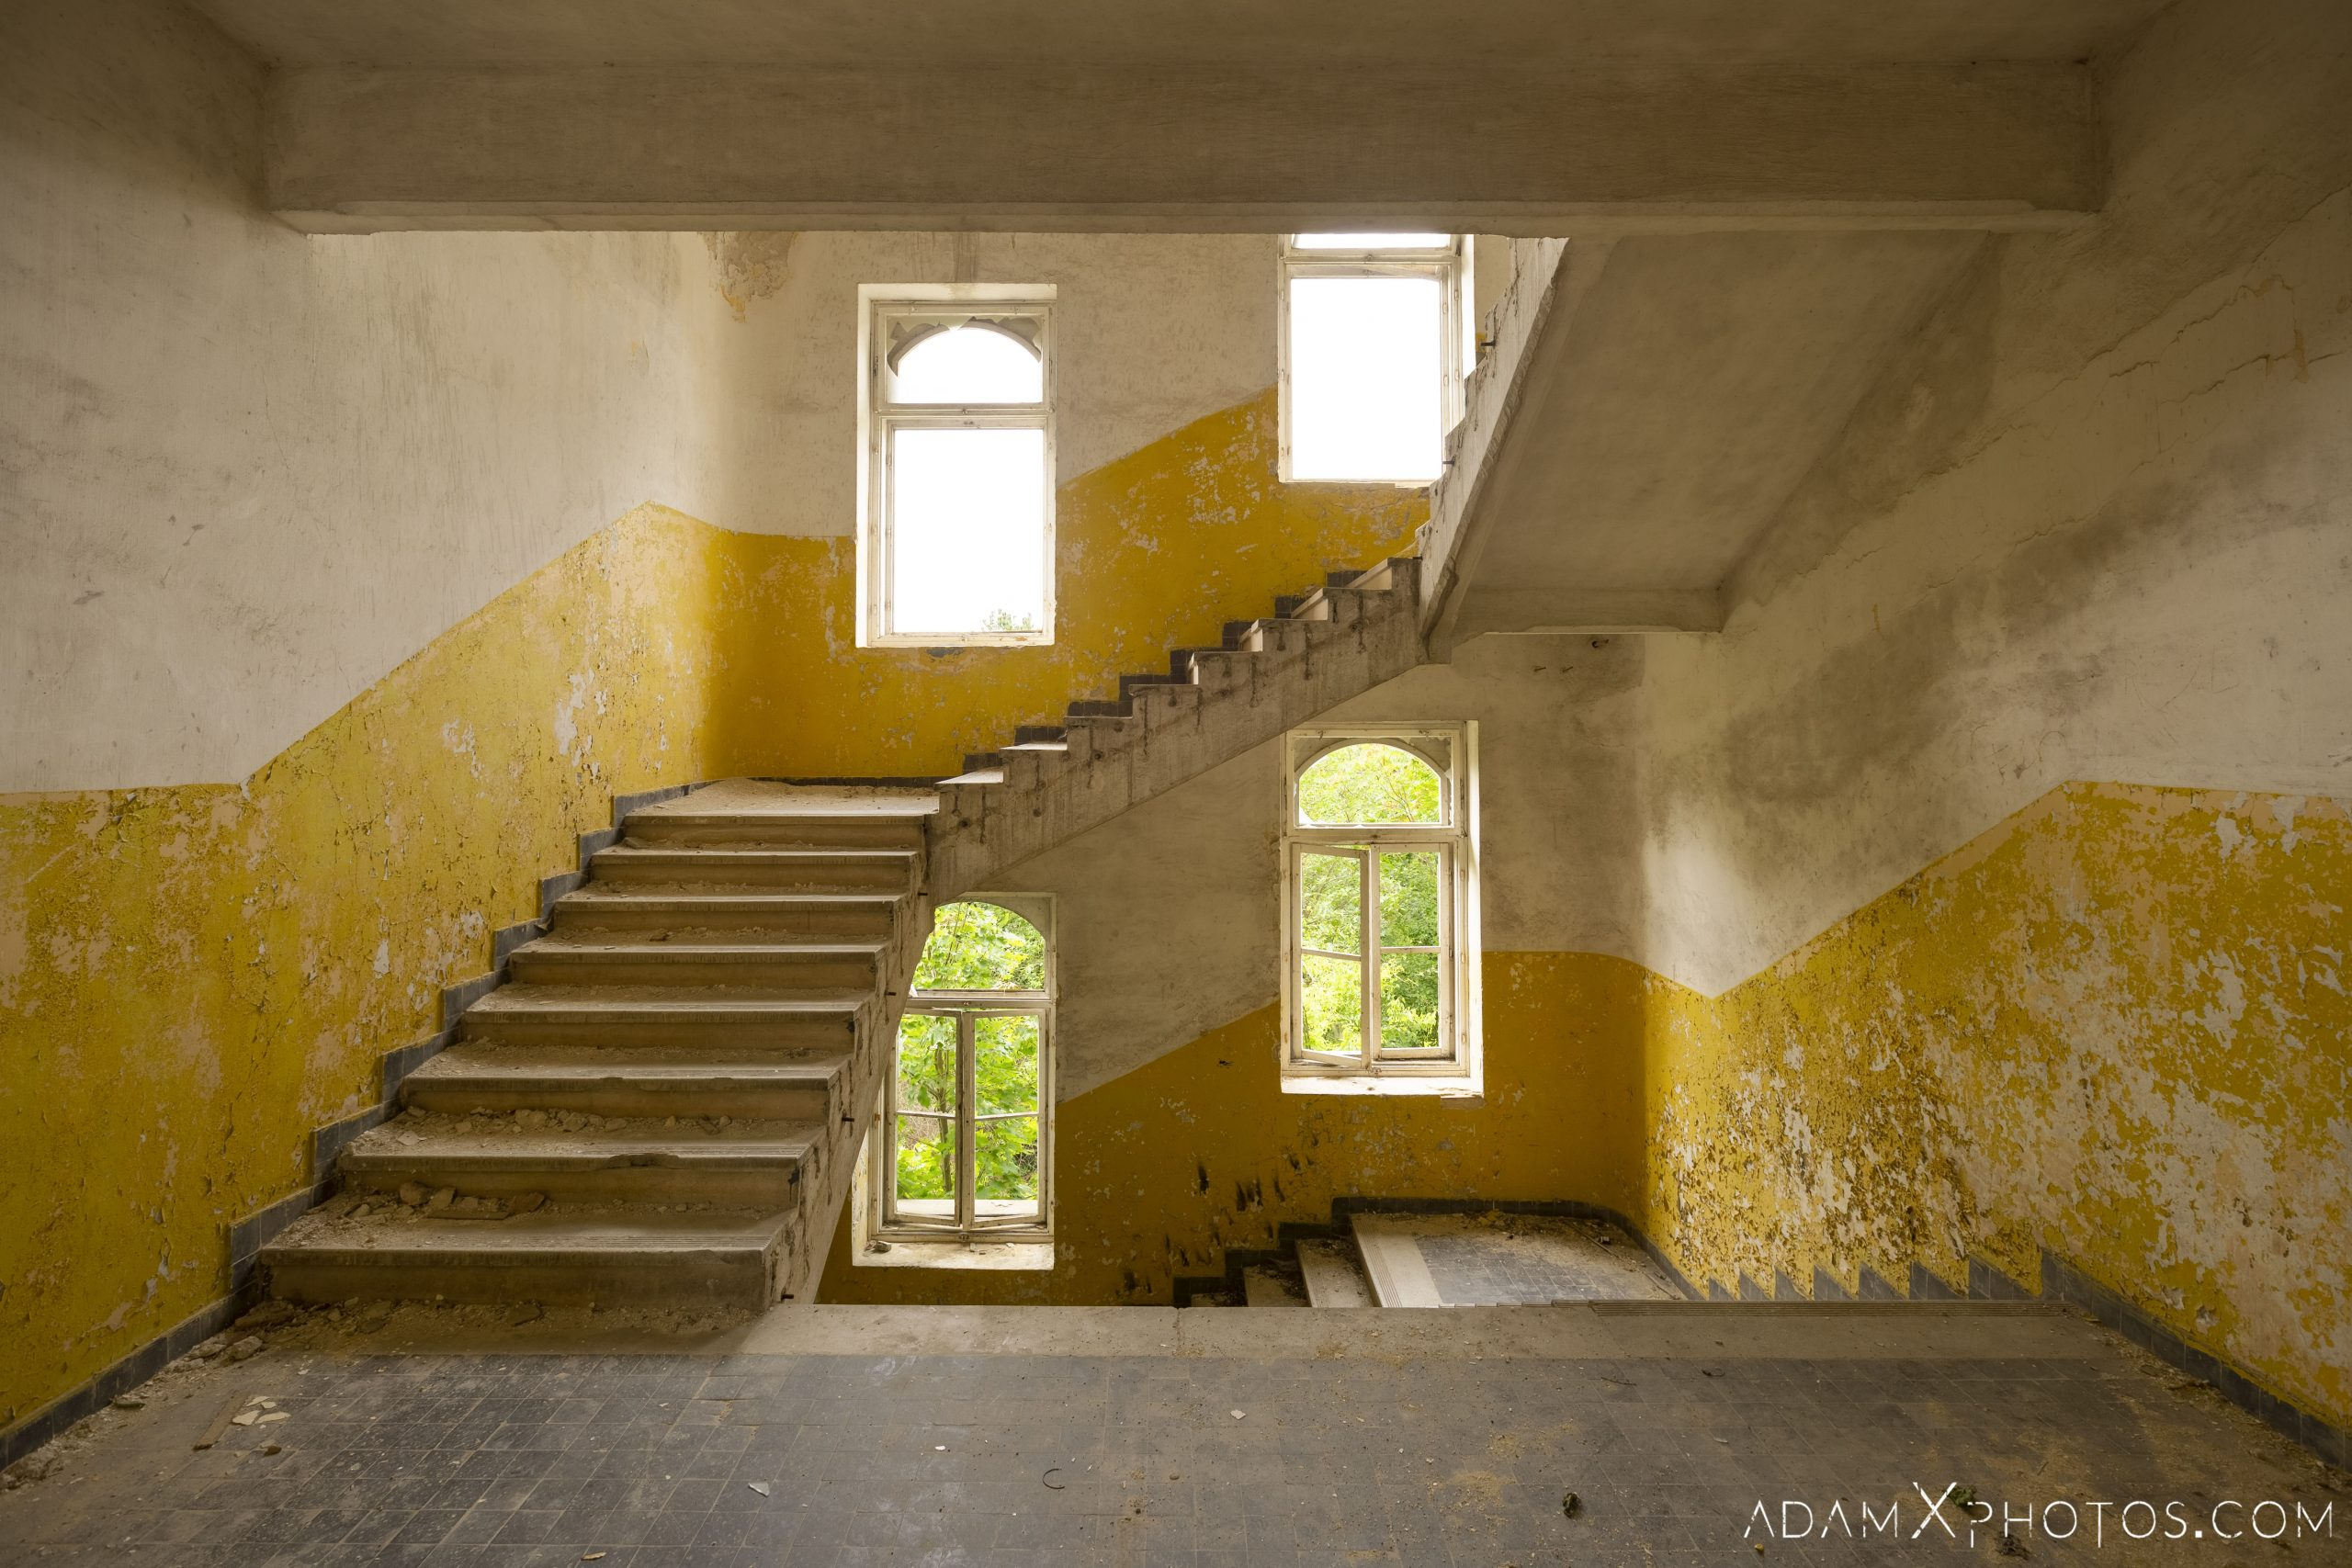 stairwell stairs staircase yellow white Hajmaskér Barracks Hungary Adam X Urbex Urban Exploration Access 2018 Abandoned decay ruins lost forgotten derelict location creepy haunting eerie